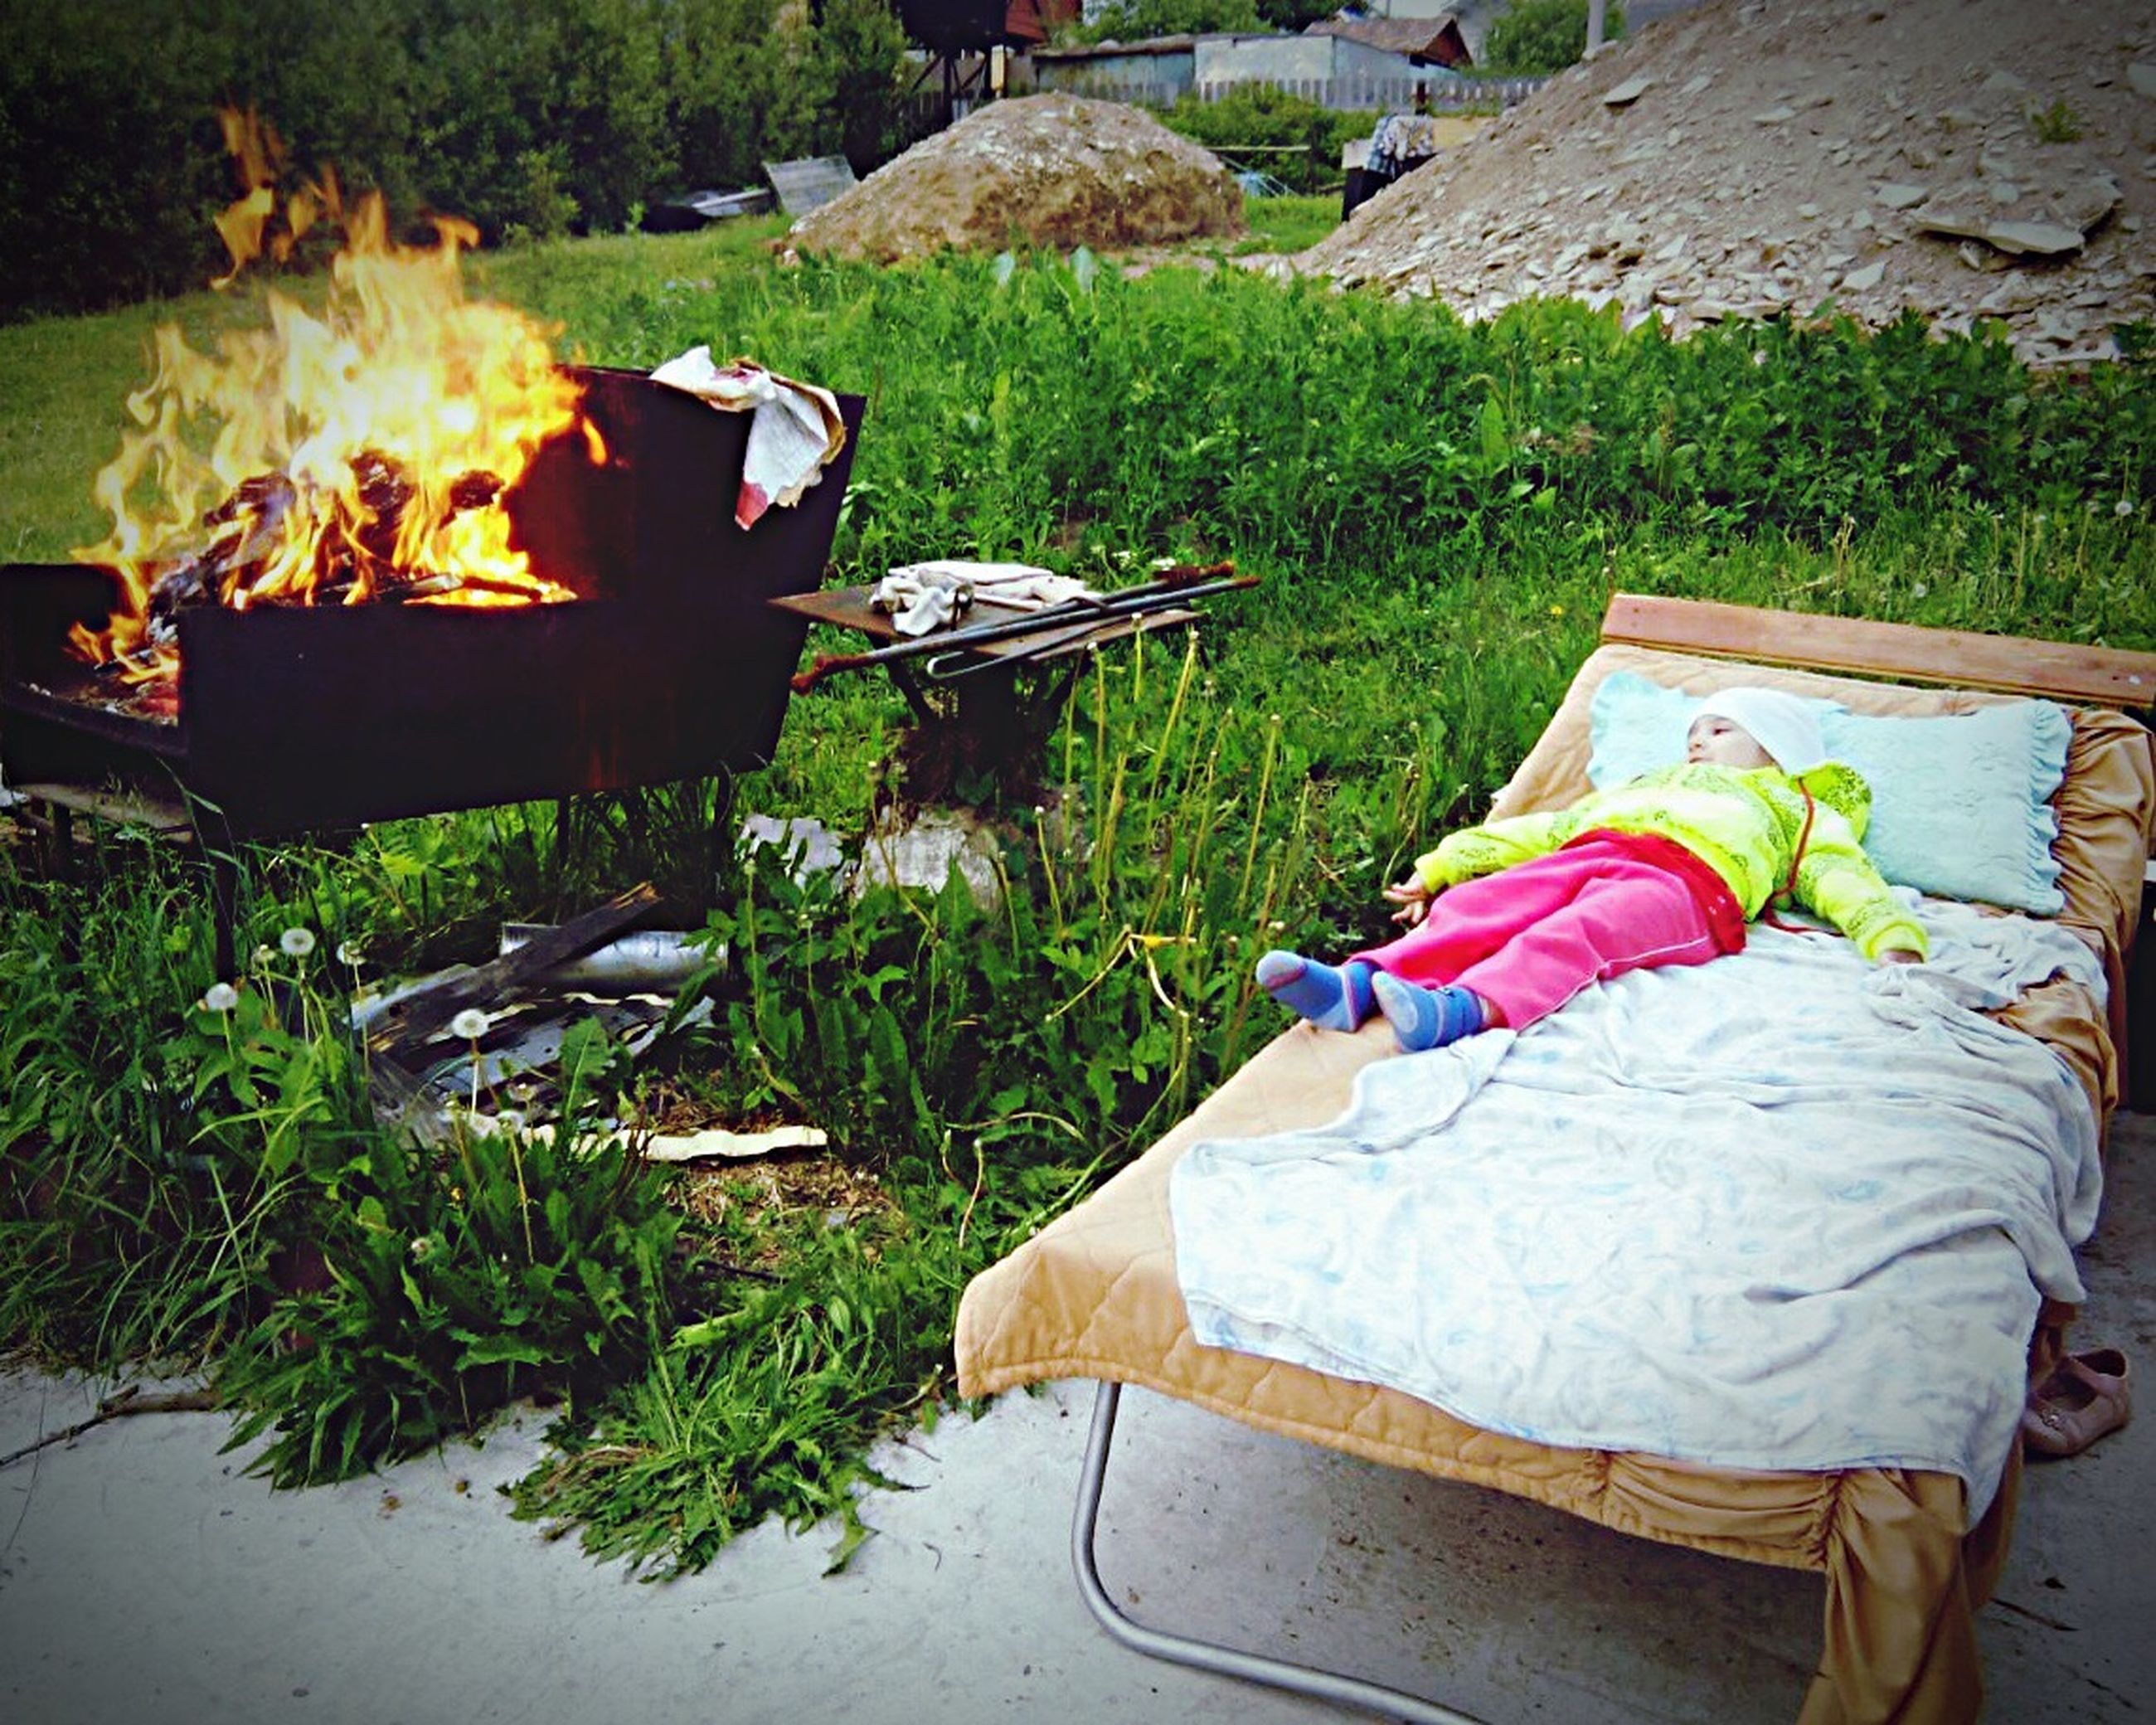 burning, bench, relaxation, heat - temperature, flame, fire - natural phenomenon, bonfire, firewood, domestic life, day, outdoors